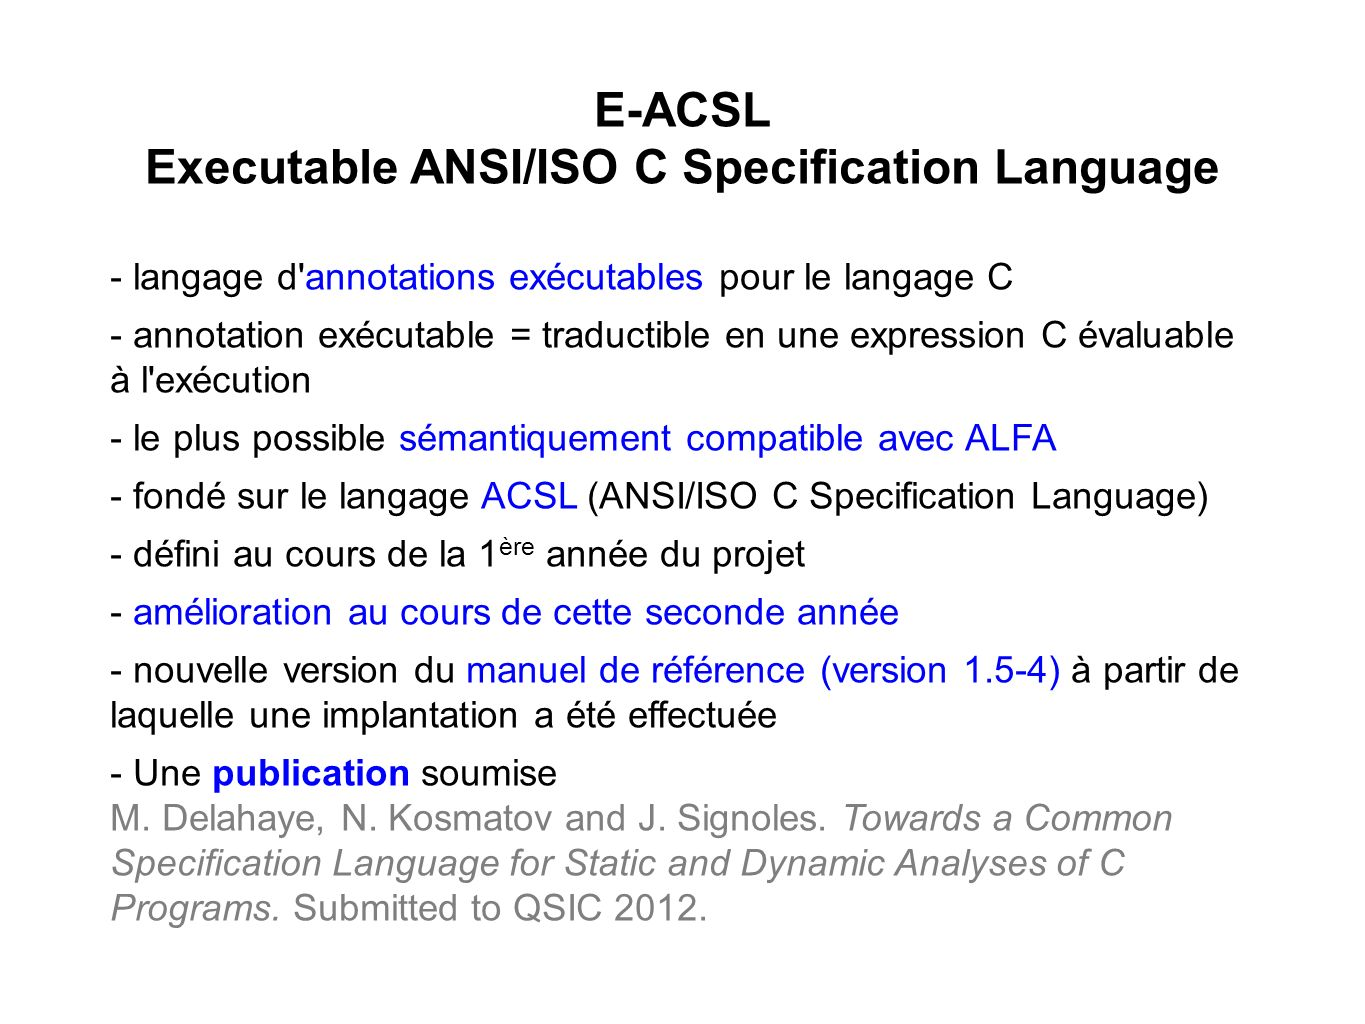 Executable ANSI/ISO C Specification Language